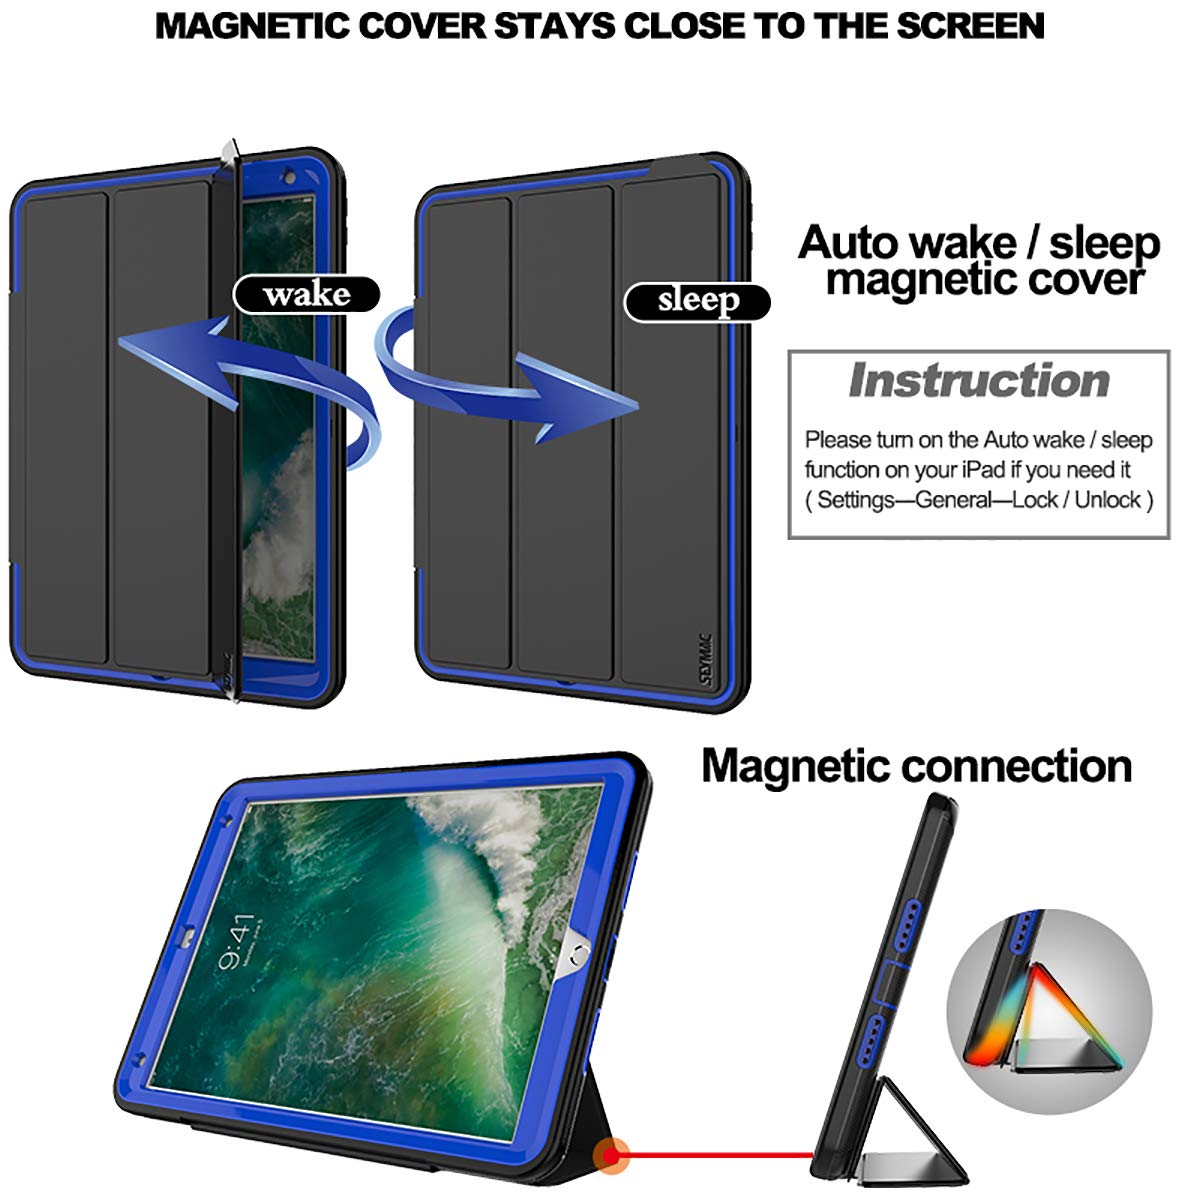 SEYMAC iPad Pro 10.5 Case, Three Layer Drop Protection Shockproof Rugged Protective Heavy Duty Folio Stand Case with Magnetic Smart Auto Wake/Sleep Cover Compatible with iPad Pro 10.5 inch-Black/Blue